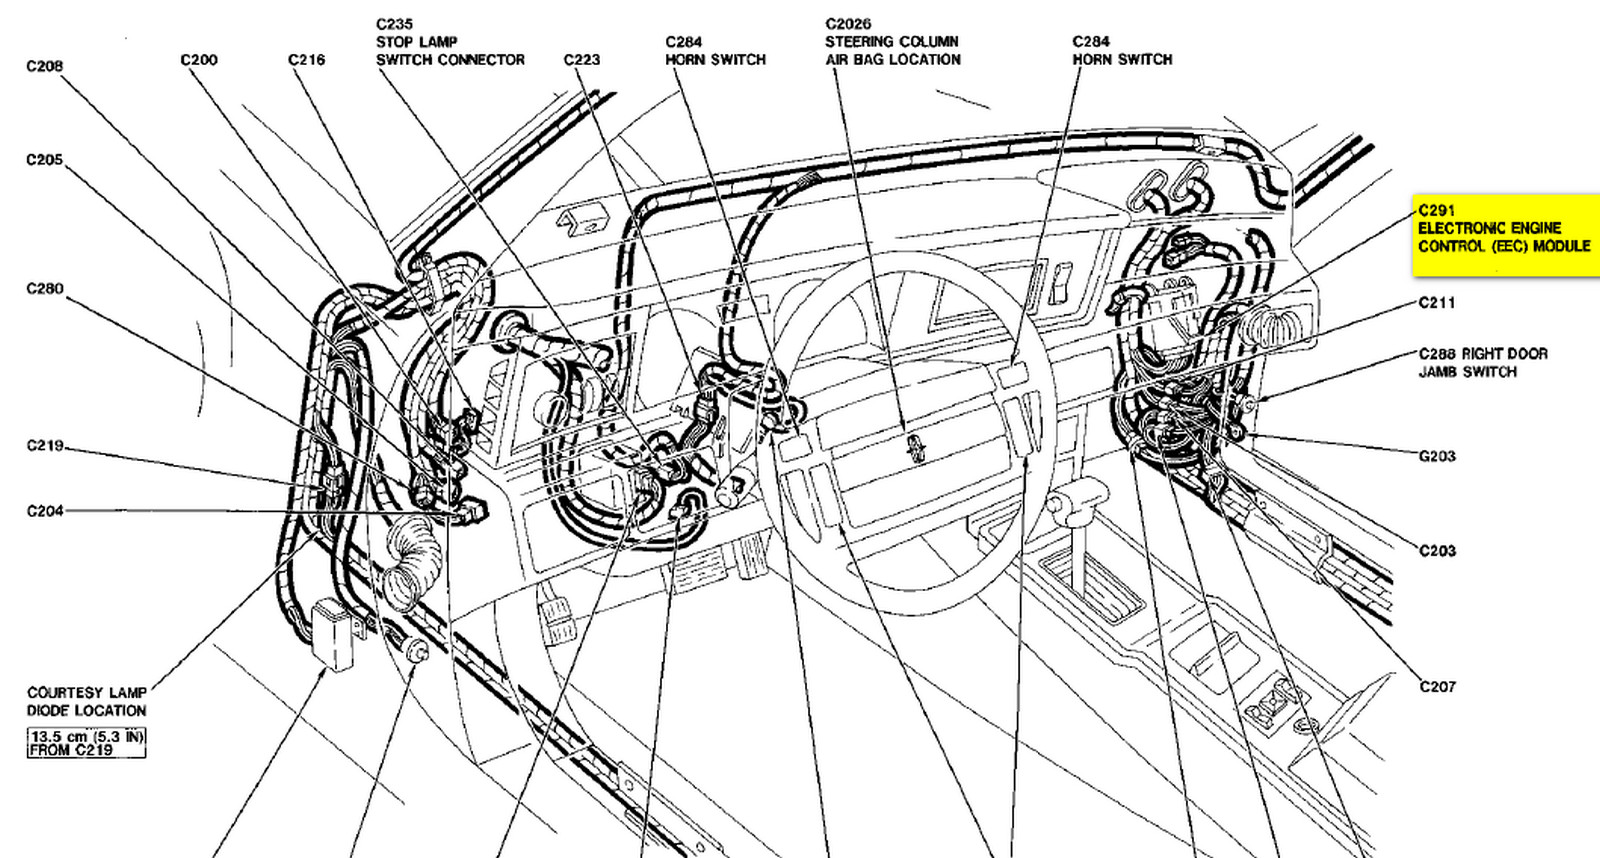 Where Can I Locate The Ecu In My 87 Lincoln Vii Lsc  And